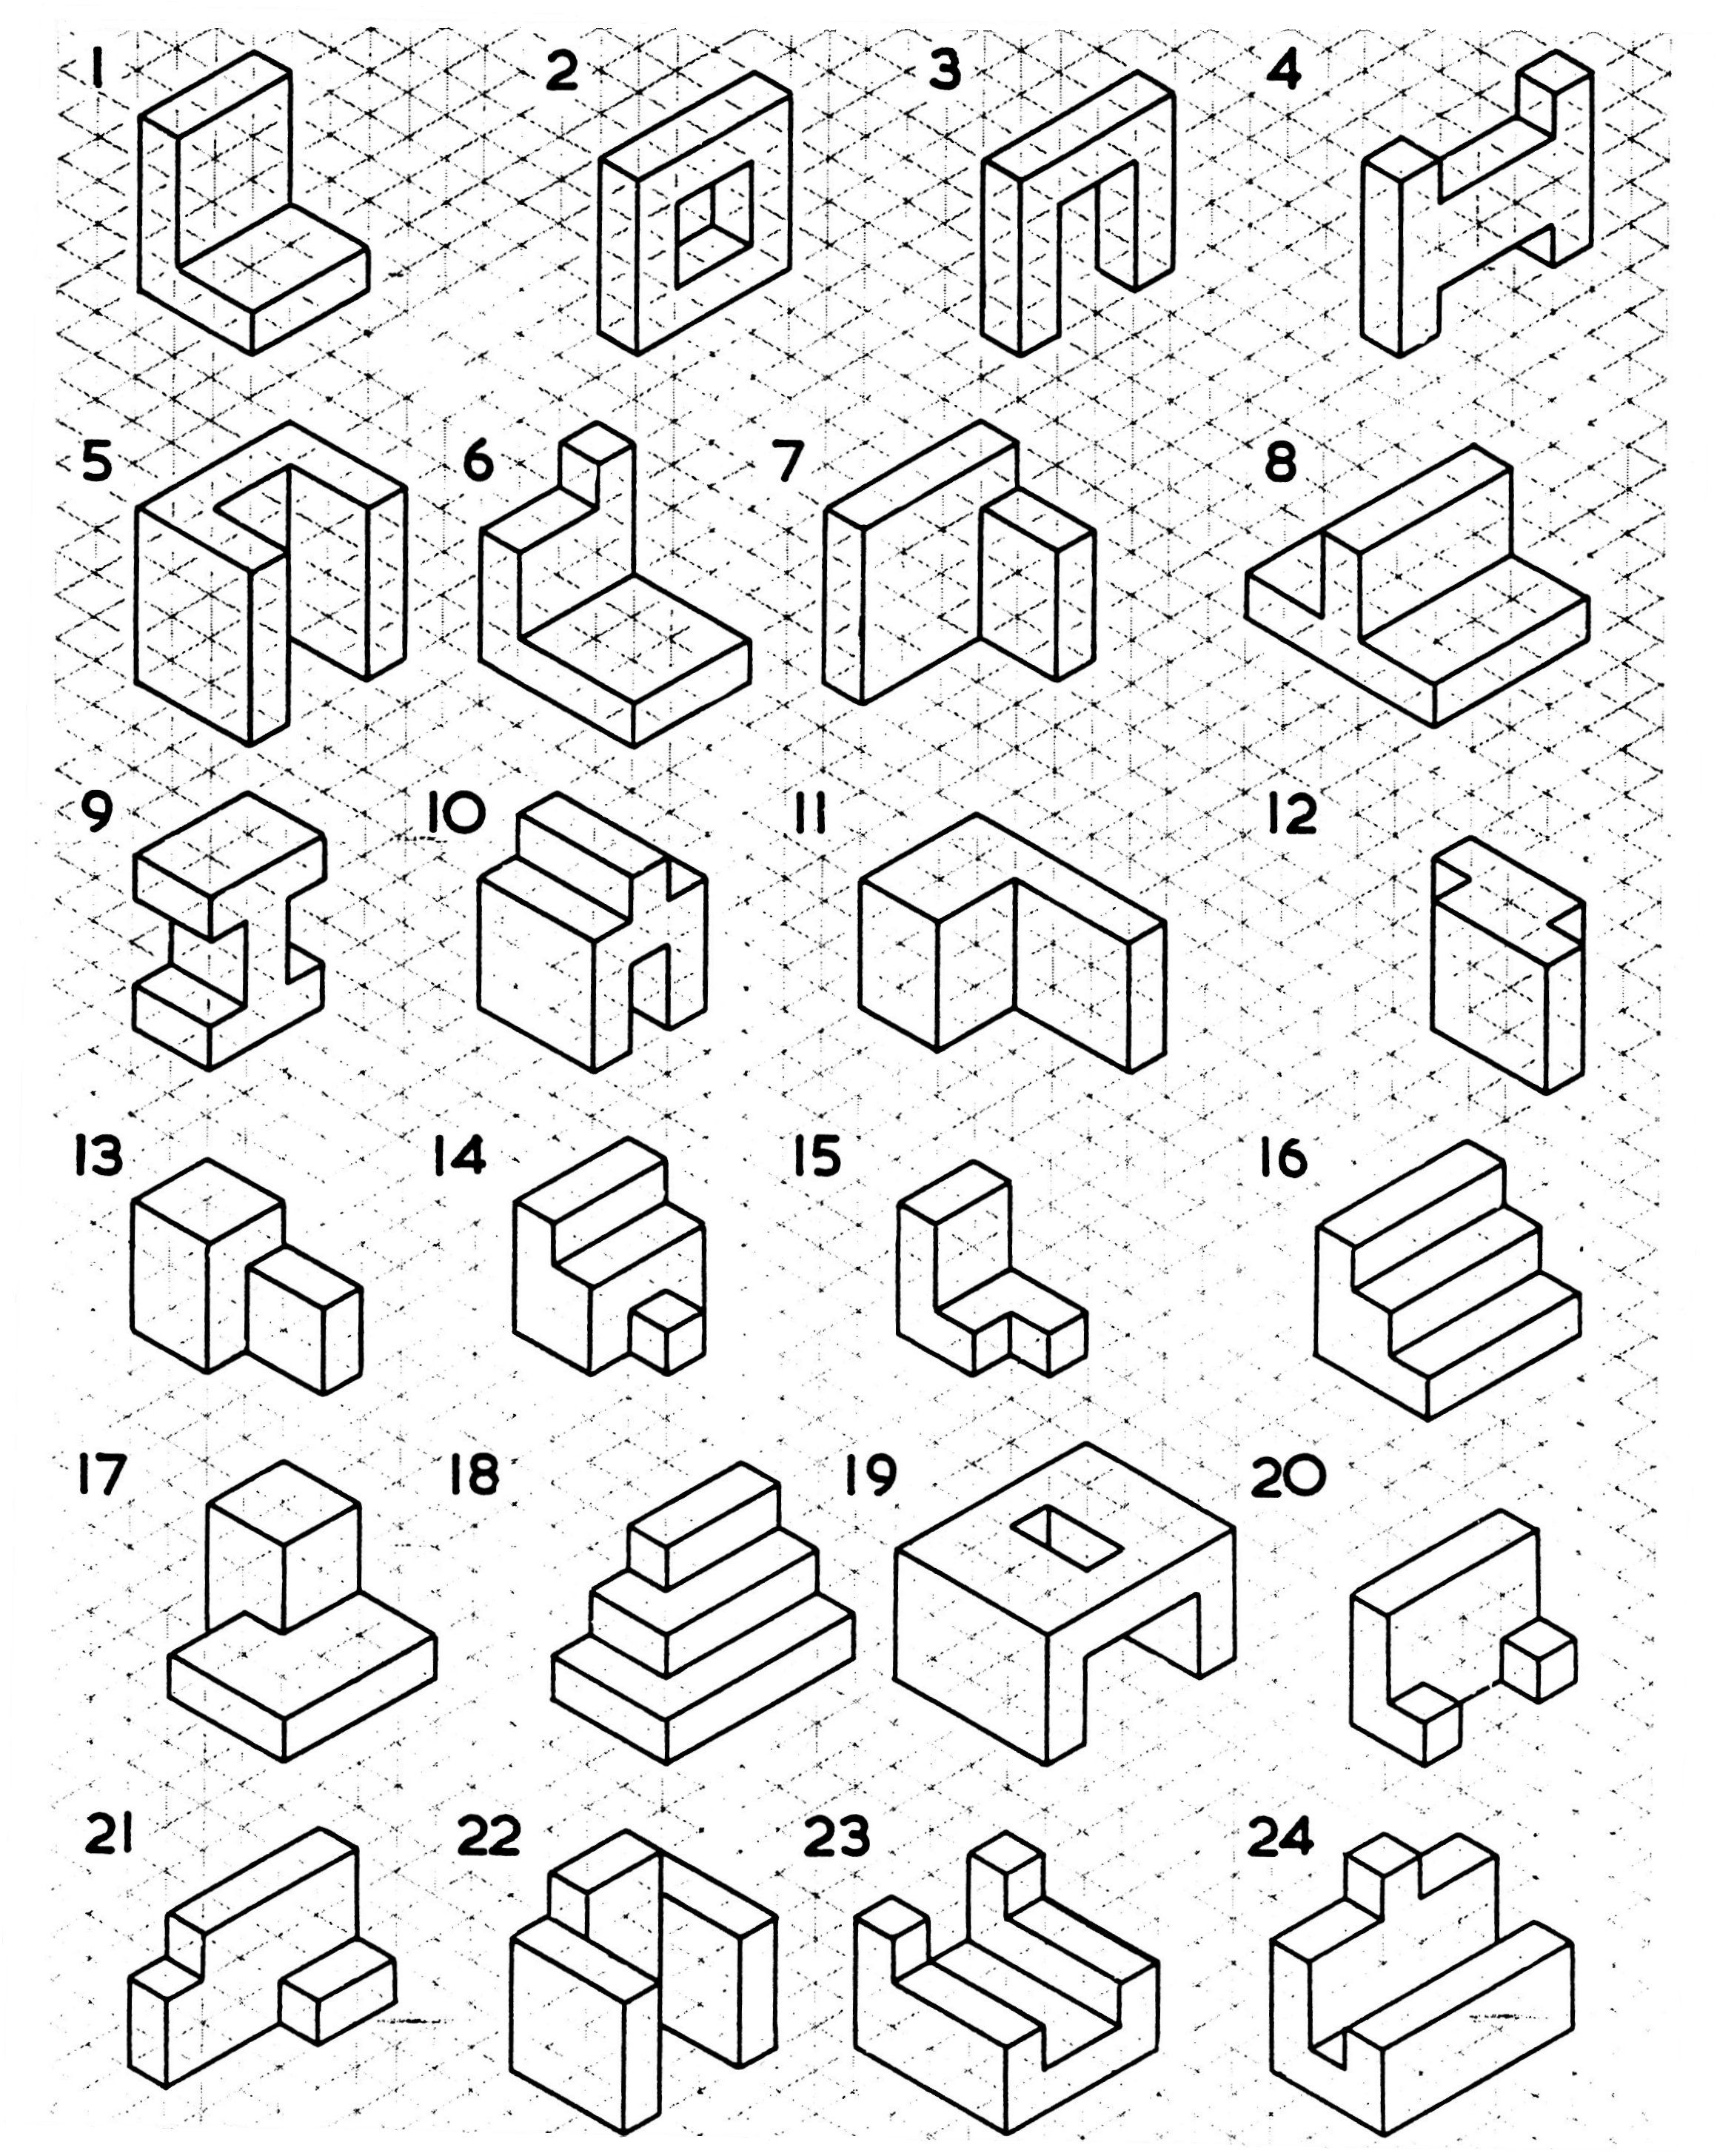 hight resolution of isometric_worksheet1.jpg (2319×2912)   Isometric drawing